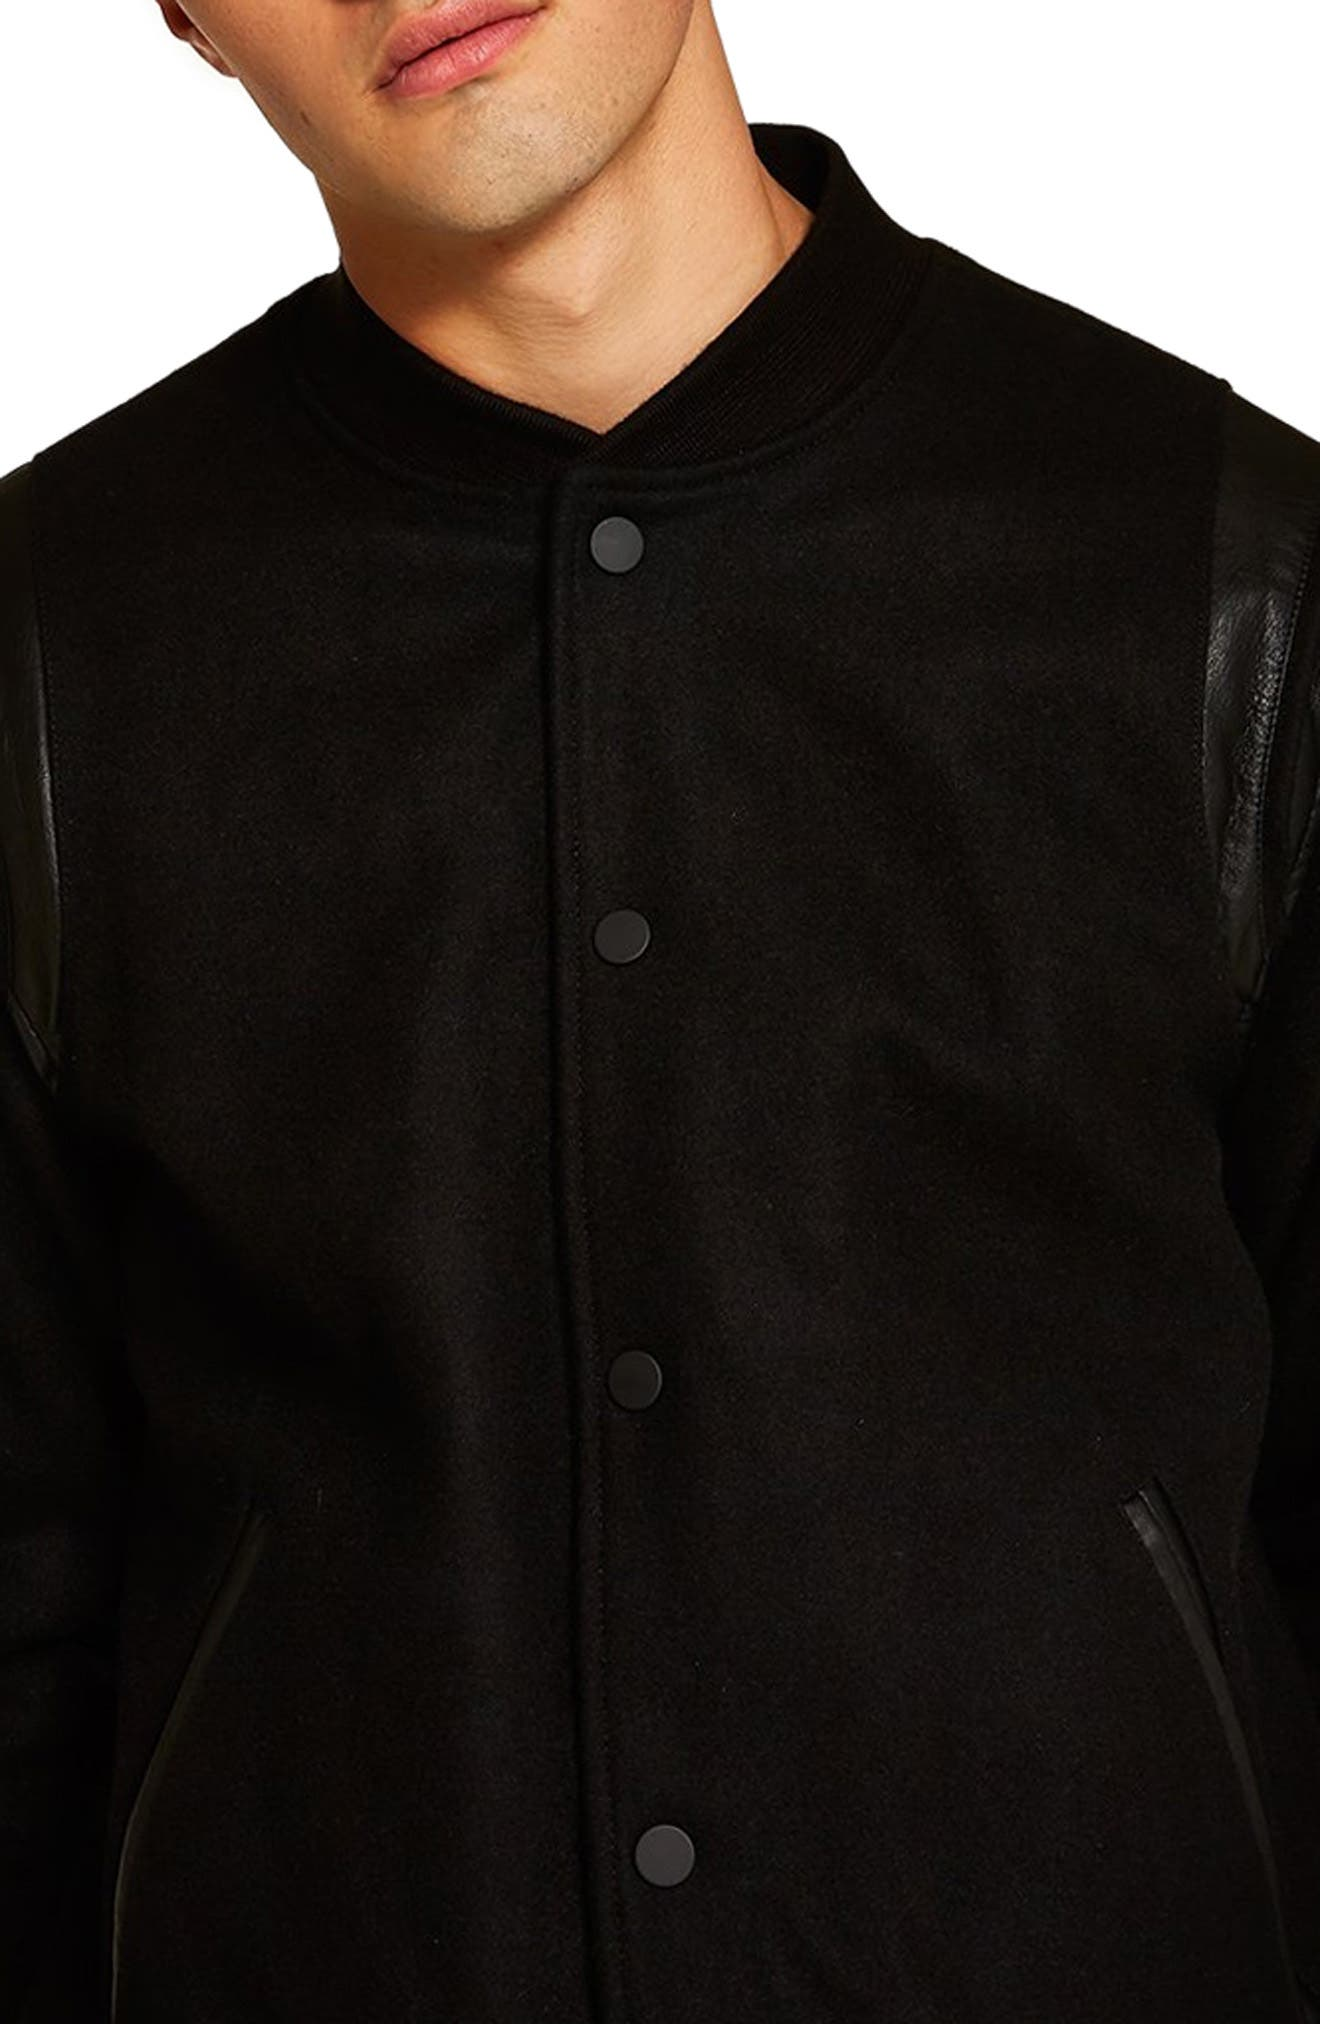 Wool Blend Varsity Jacket,                             Alternate thumbnail 3, color,                             BLACK